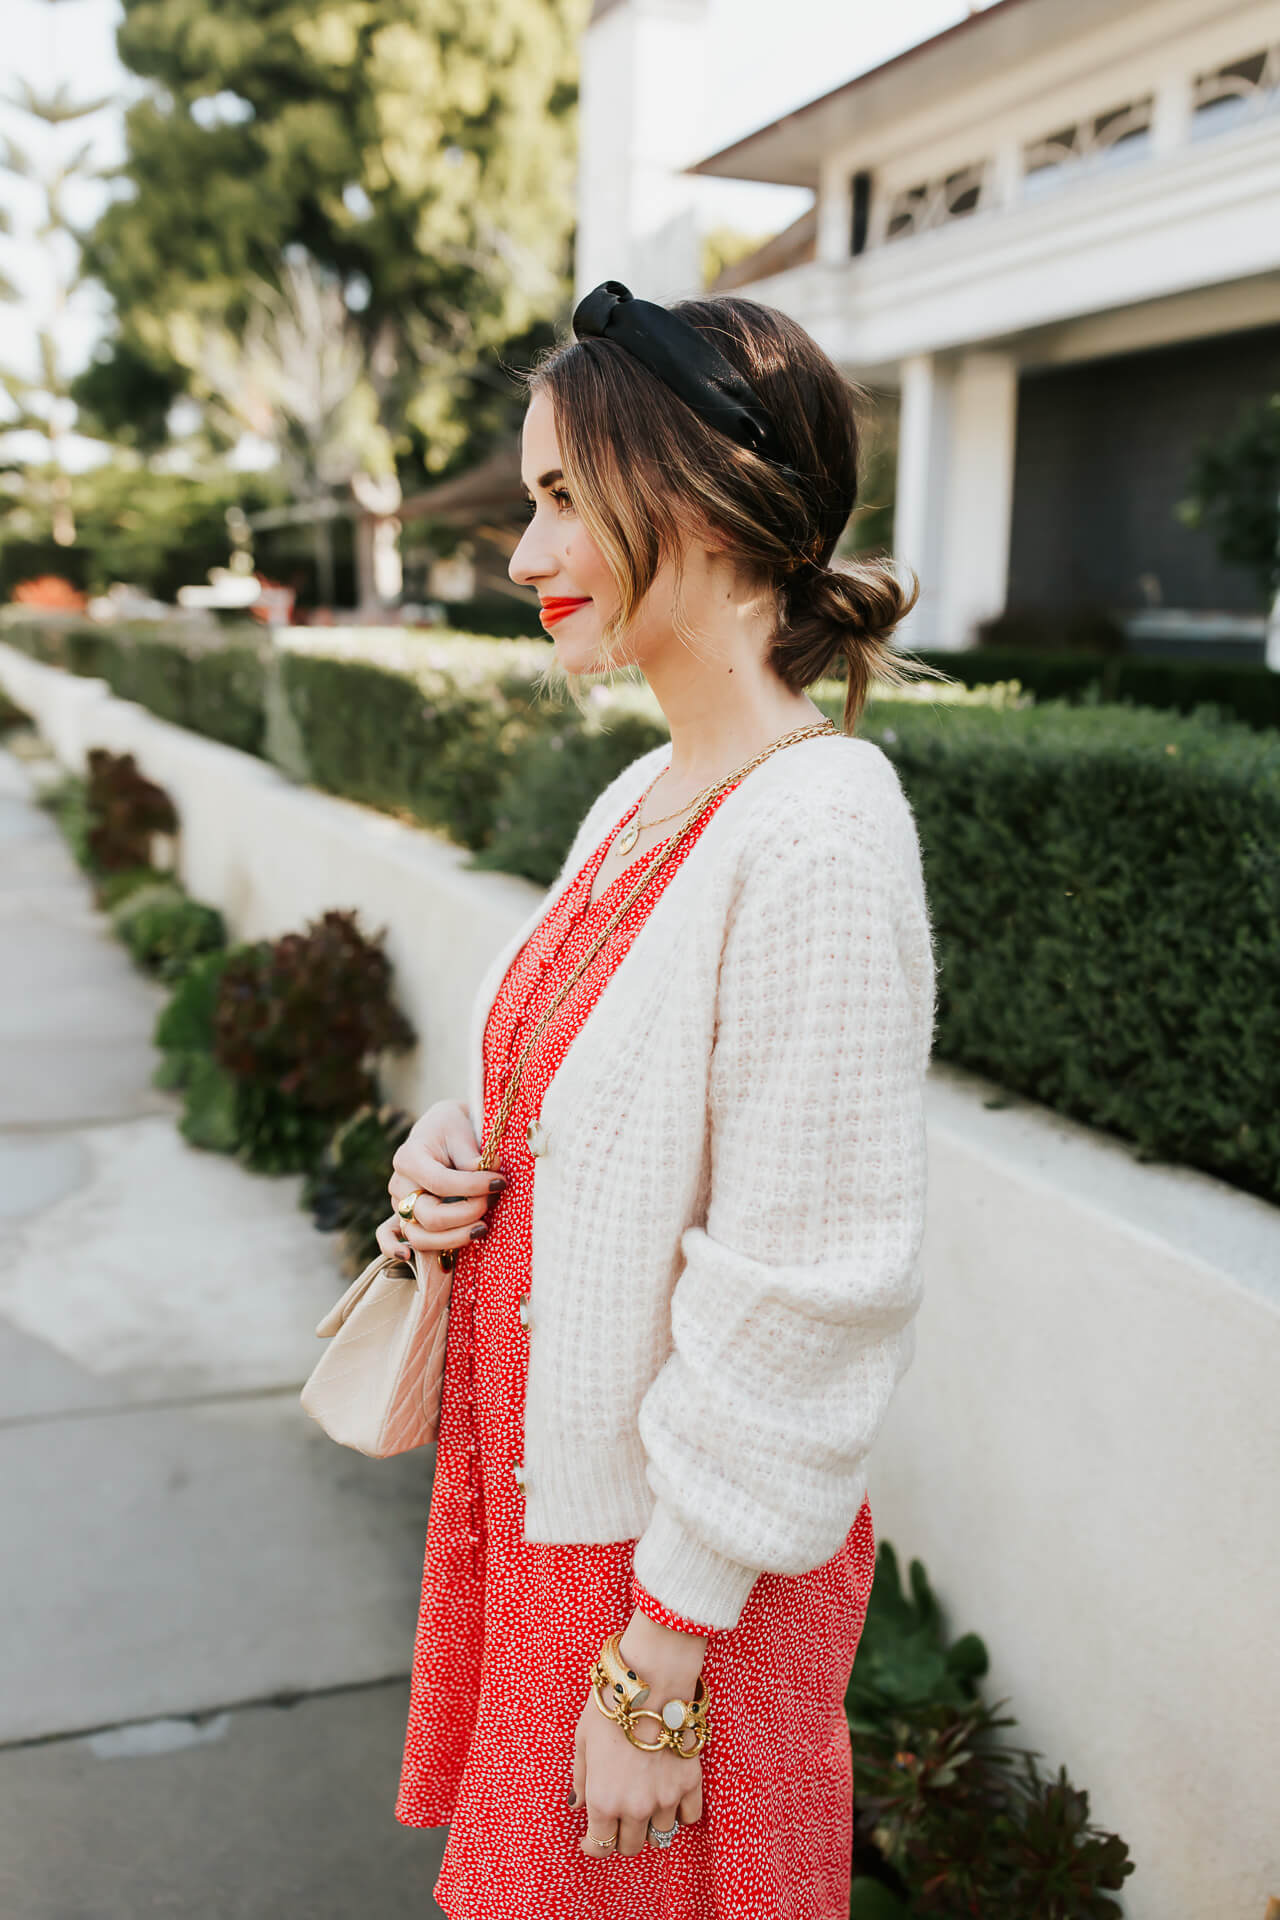 A chic Parisian inspired outfit! - M Loves M @marmar